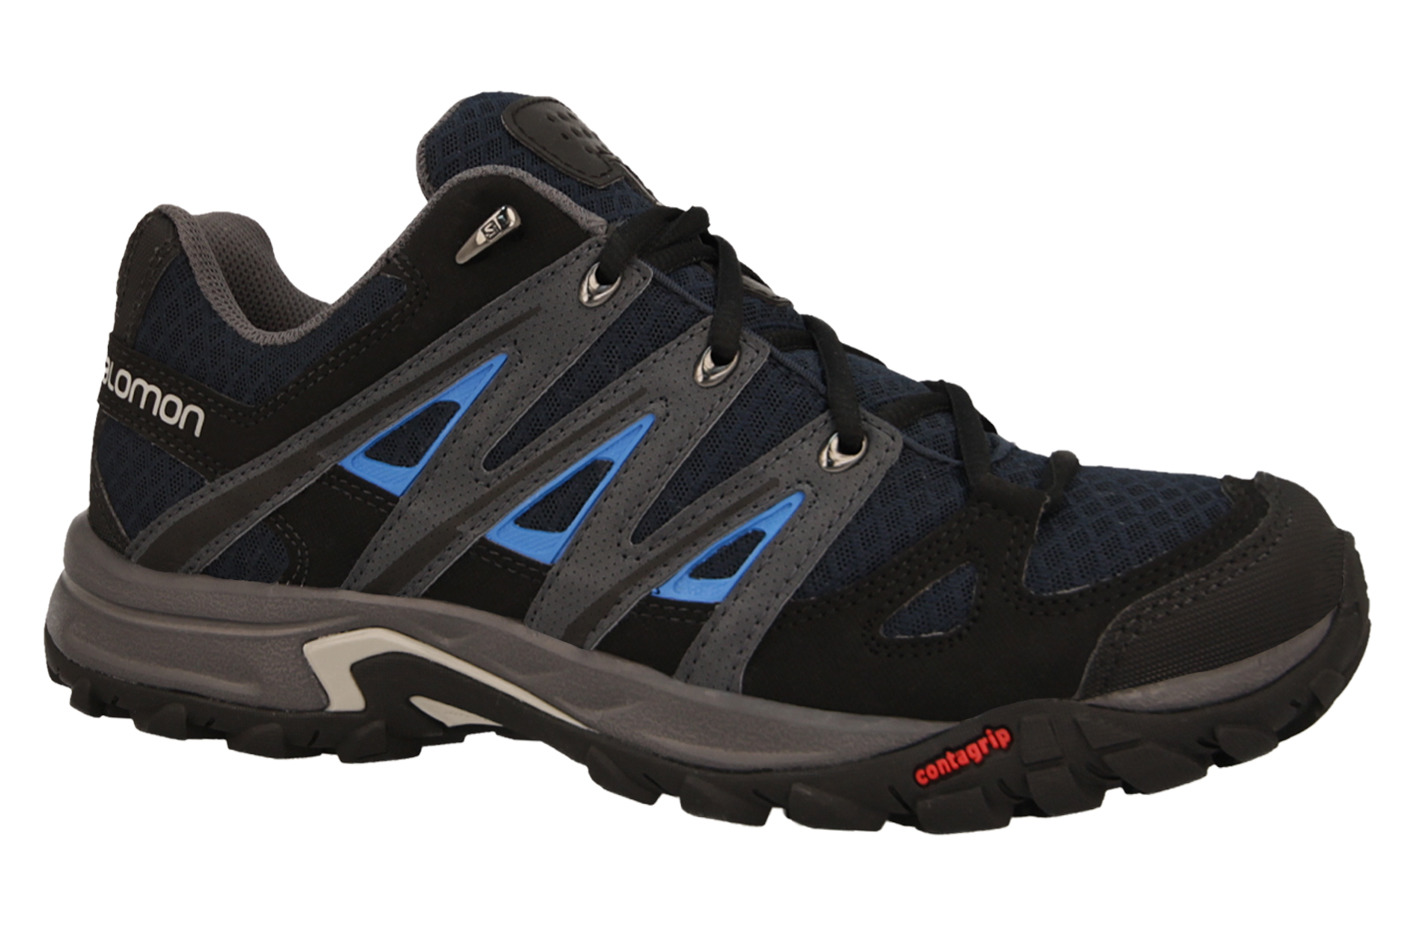 https://yessport.pl/pol_pl_BUTY-SALOMON-ESKAPE-AERO-370740-7124_2.jpg